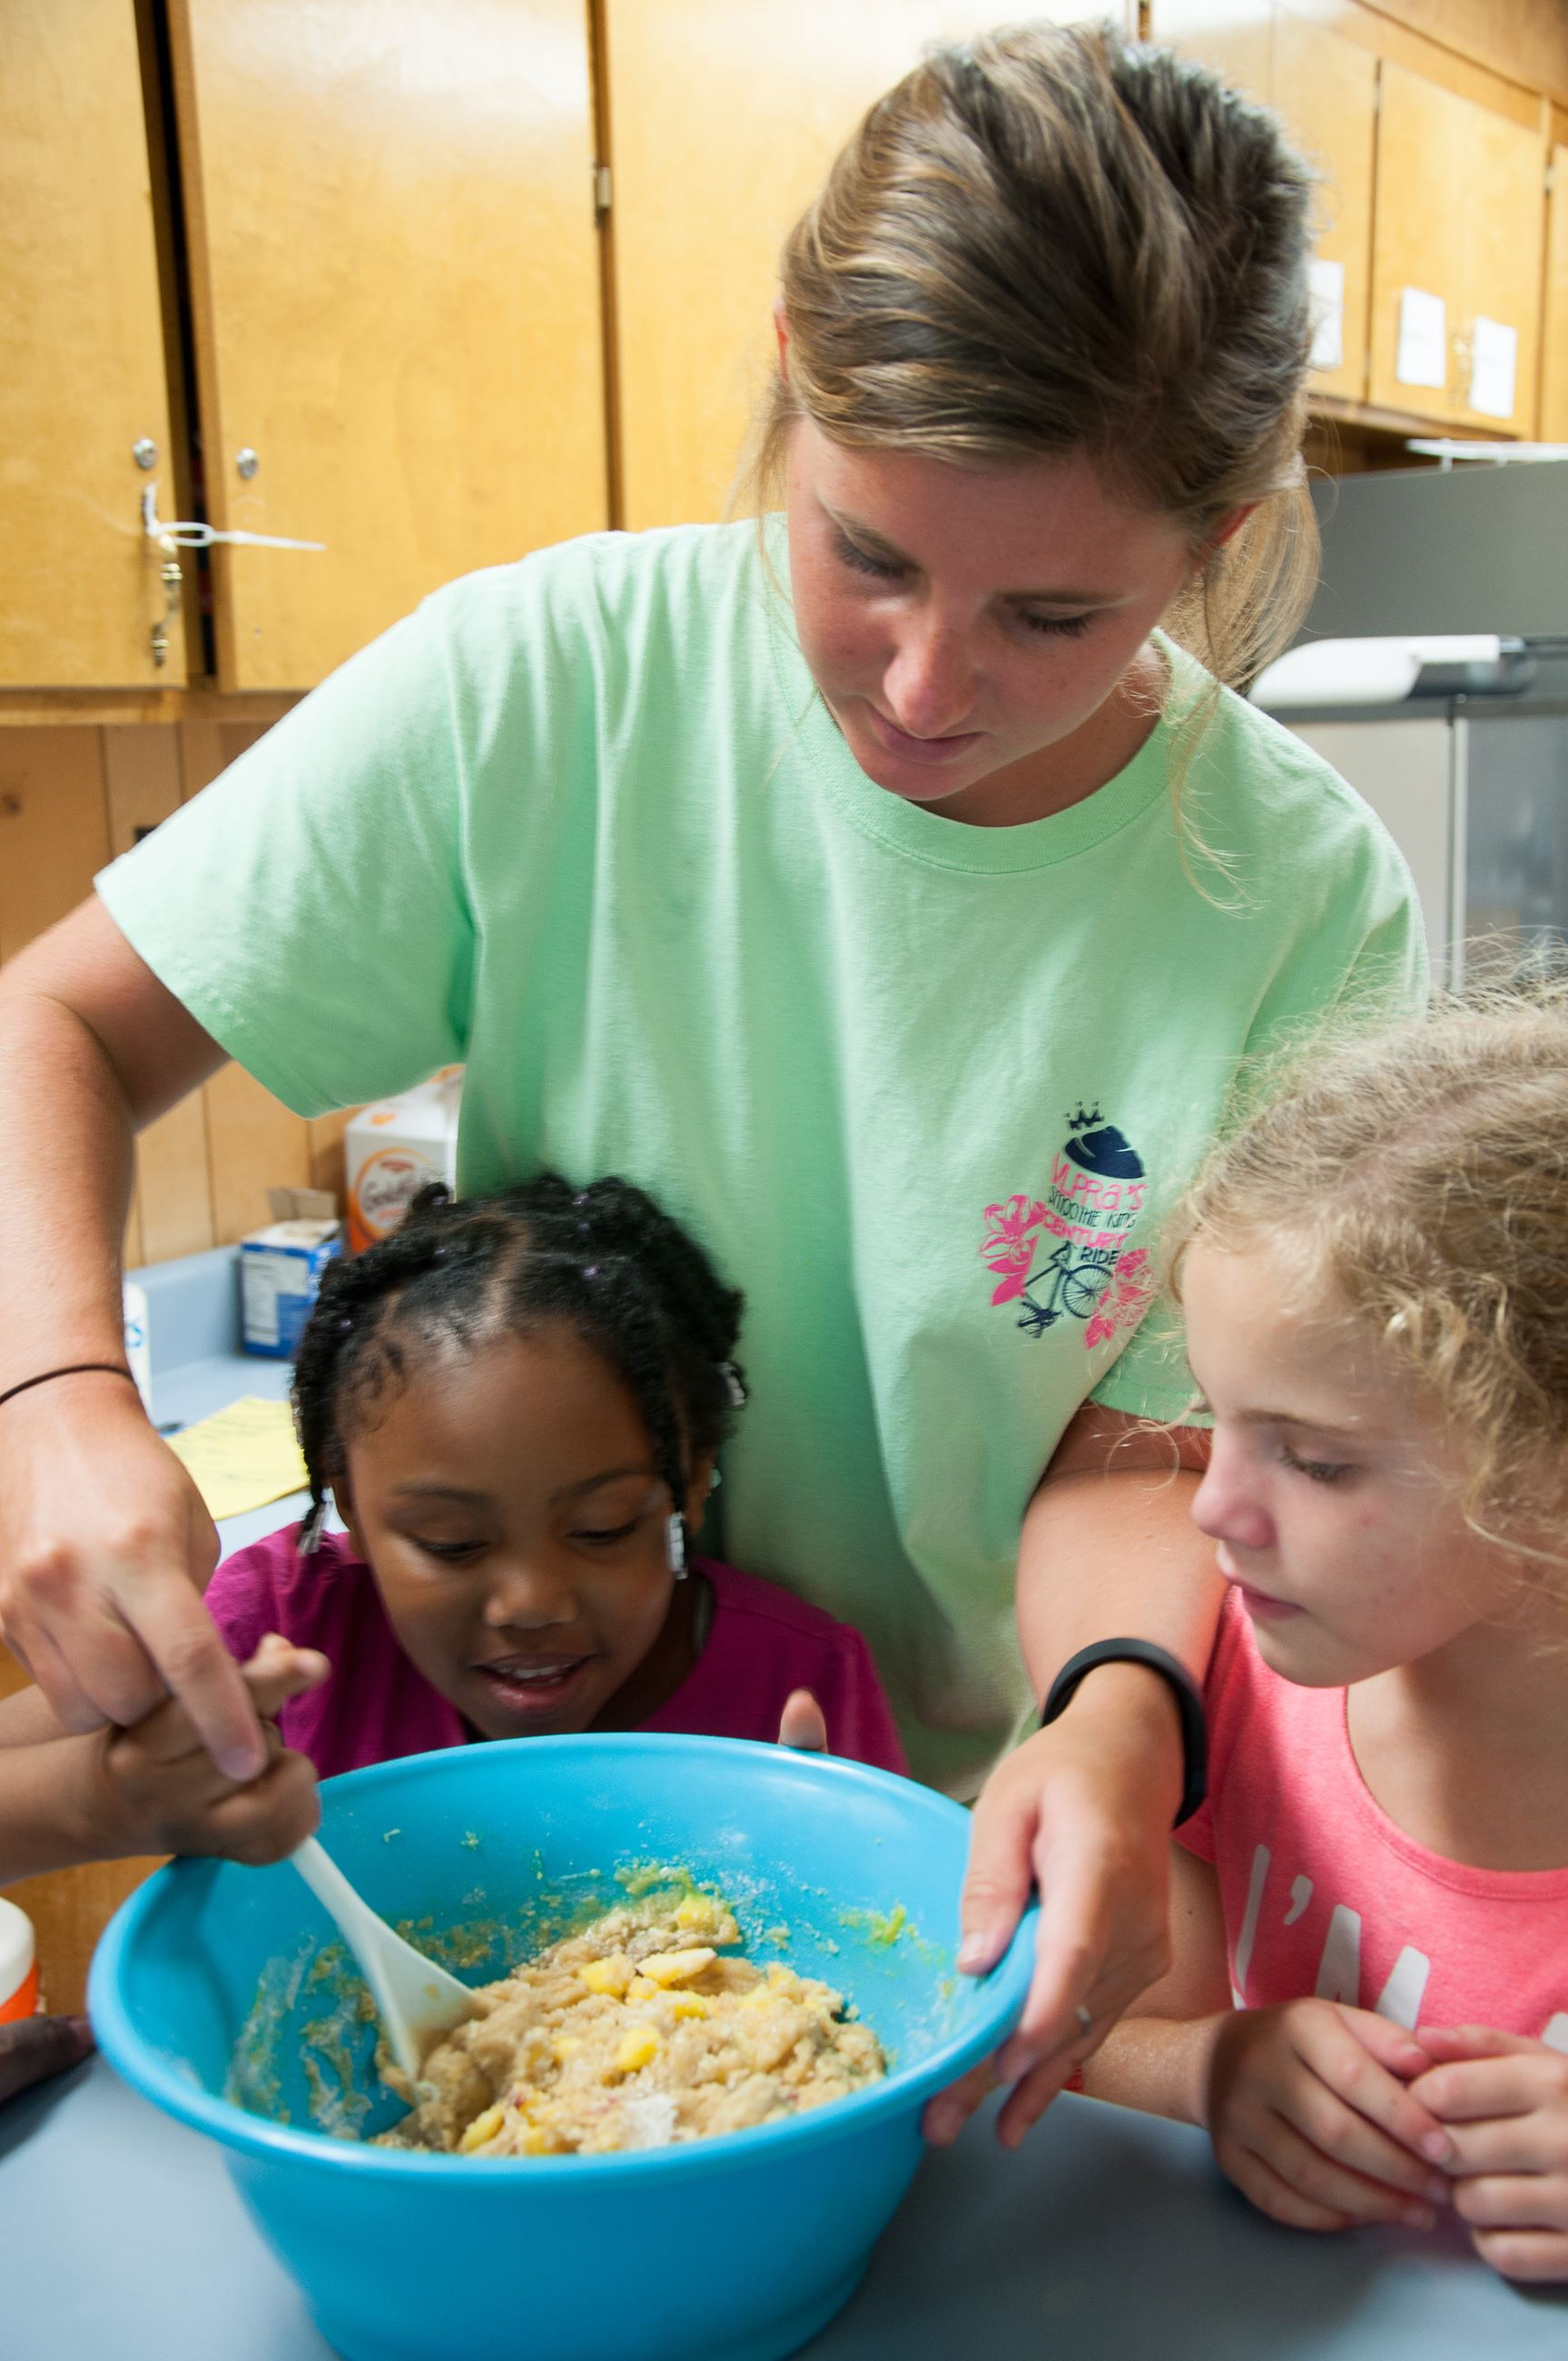 An image of a woman helping a little girl stir a bowl of batter.